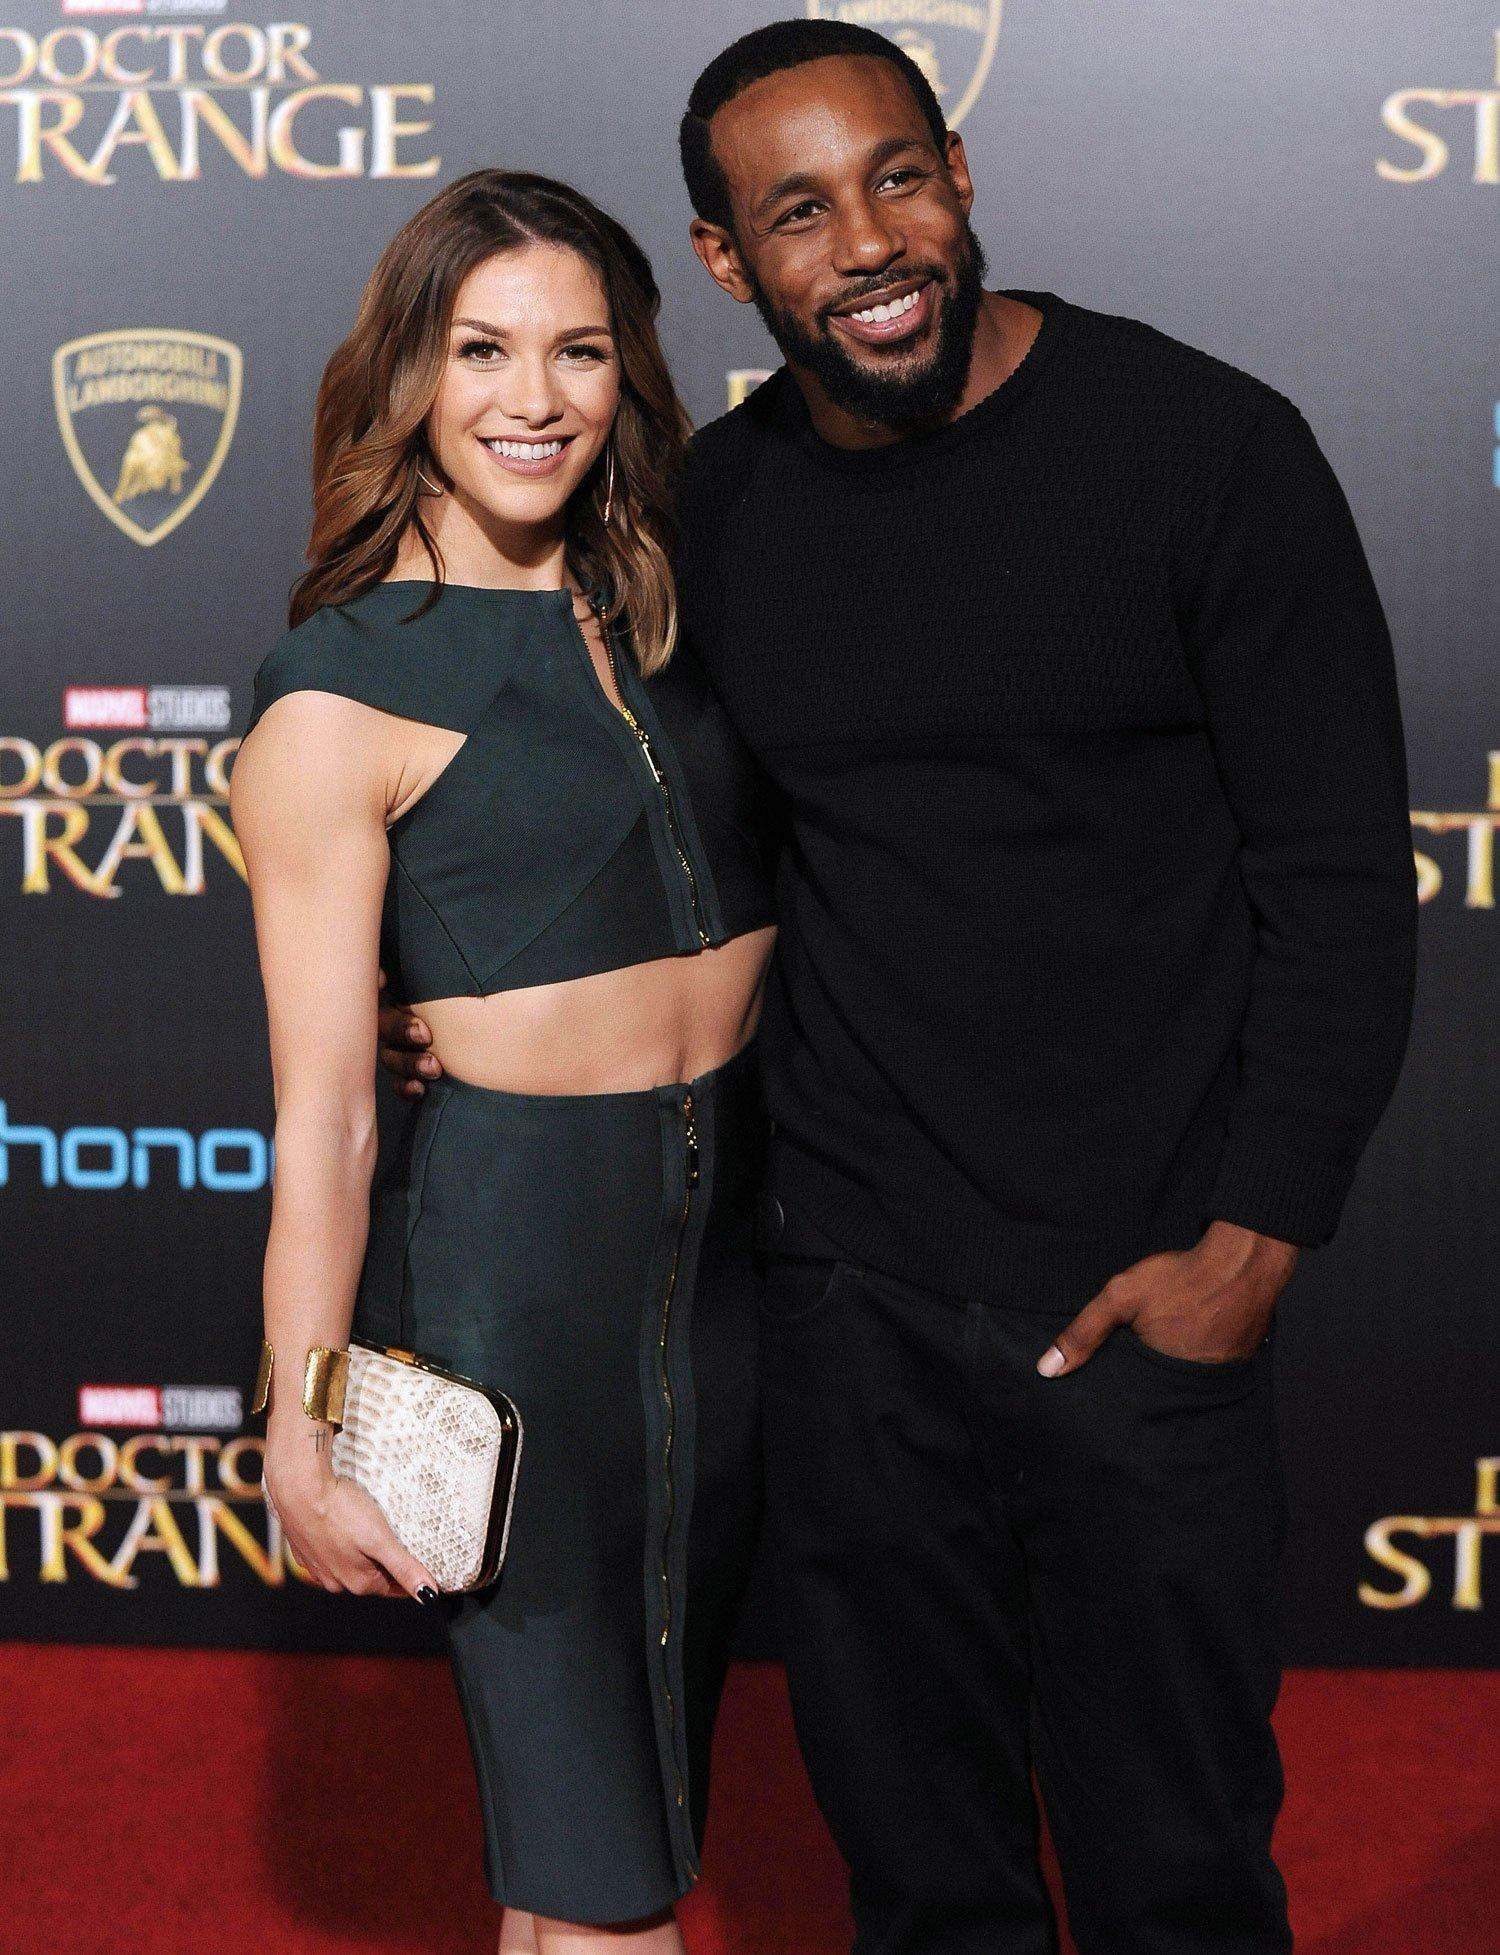 Tiny Dancer Allison Holker And Stephen Twitch Boss Welcome A Daughter Syndicated news and opinion website providing continuously updated headlines to top news and analysis sources. tiny dancer allison holker and stephen twitch boss welcome a daughter